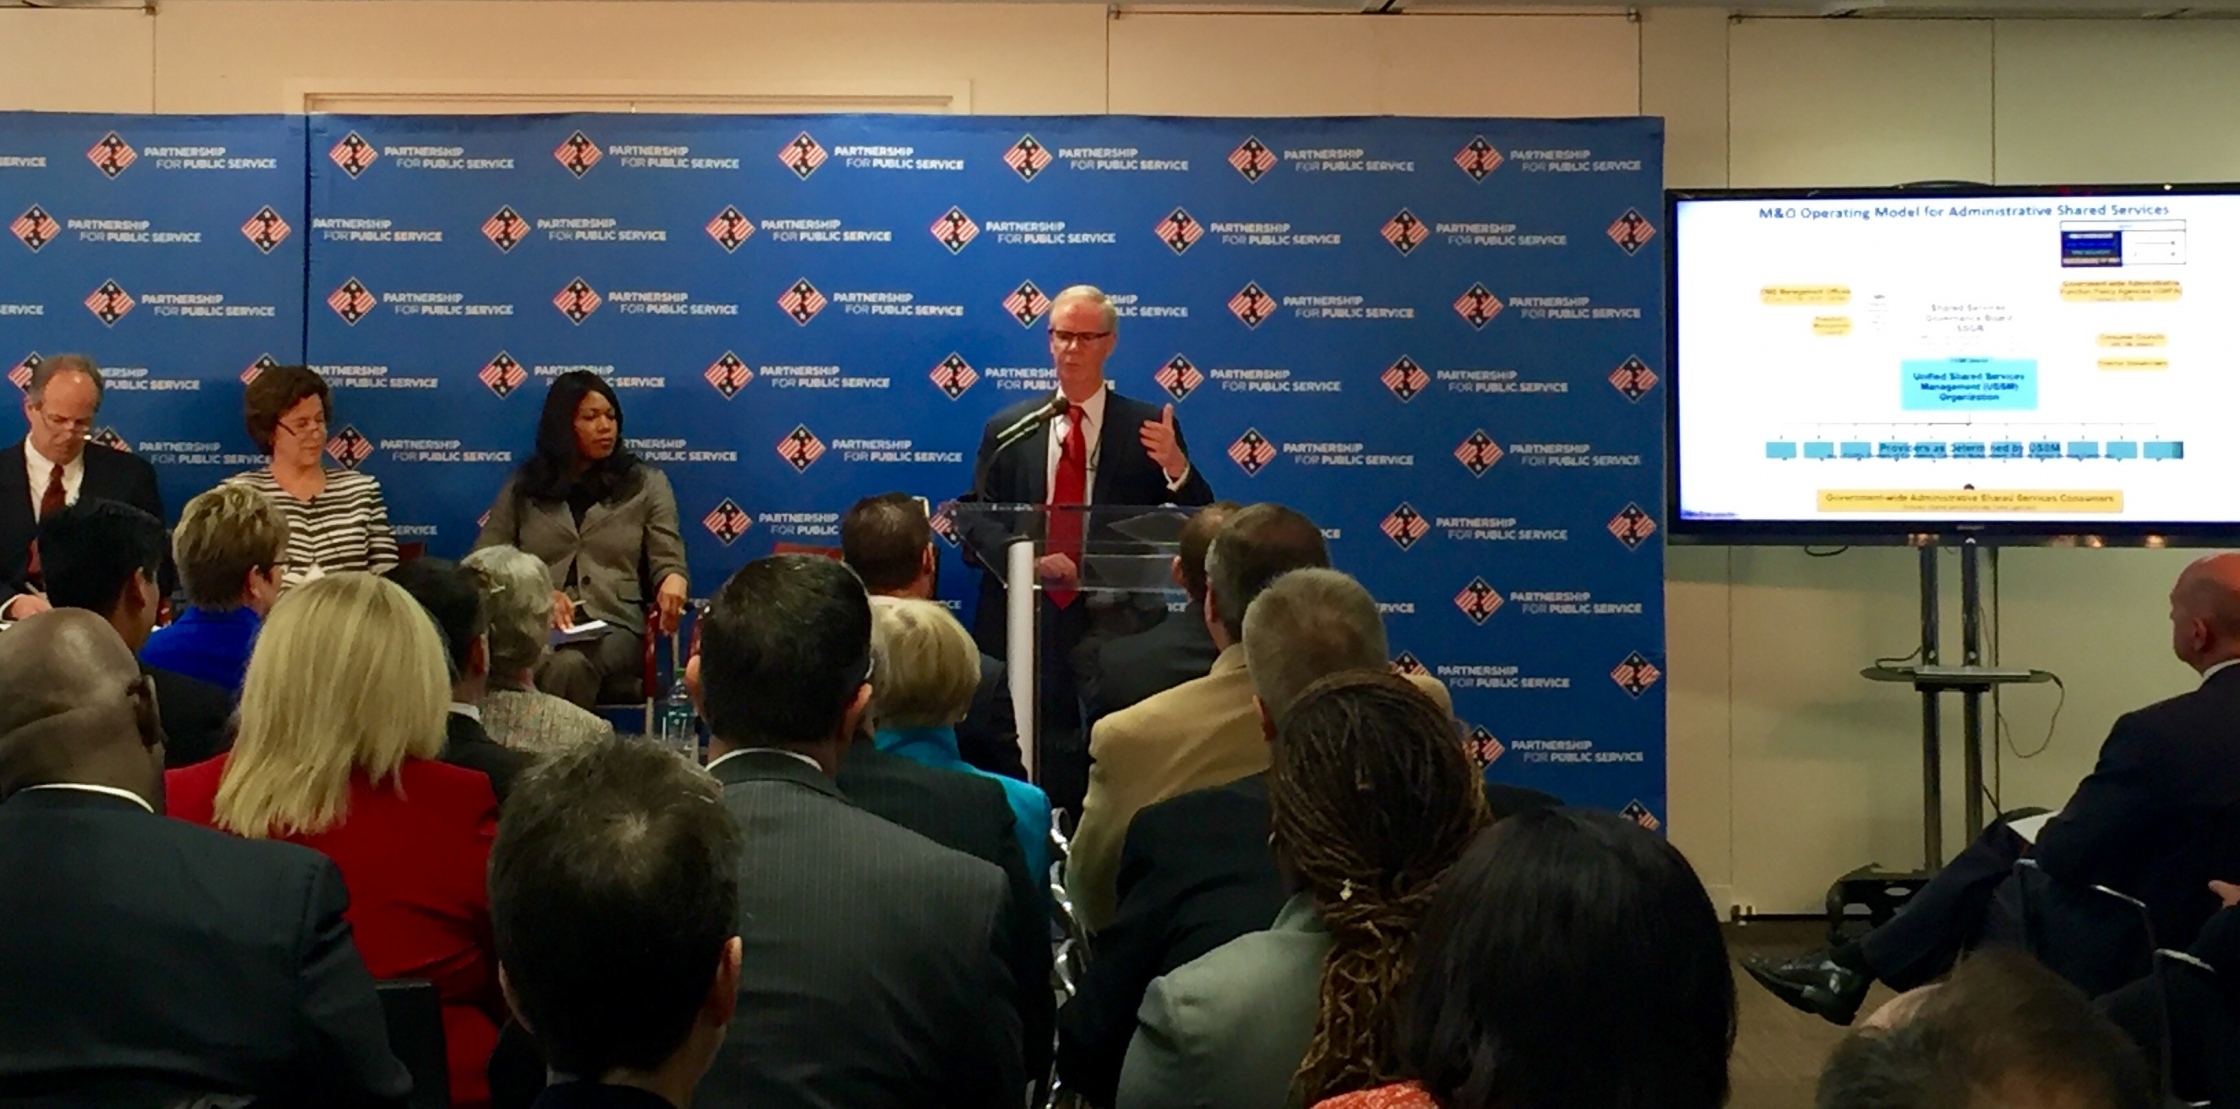 David Mader , speaks at the Partnership for Public Service on 10/22/15.